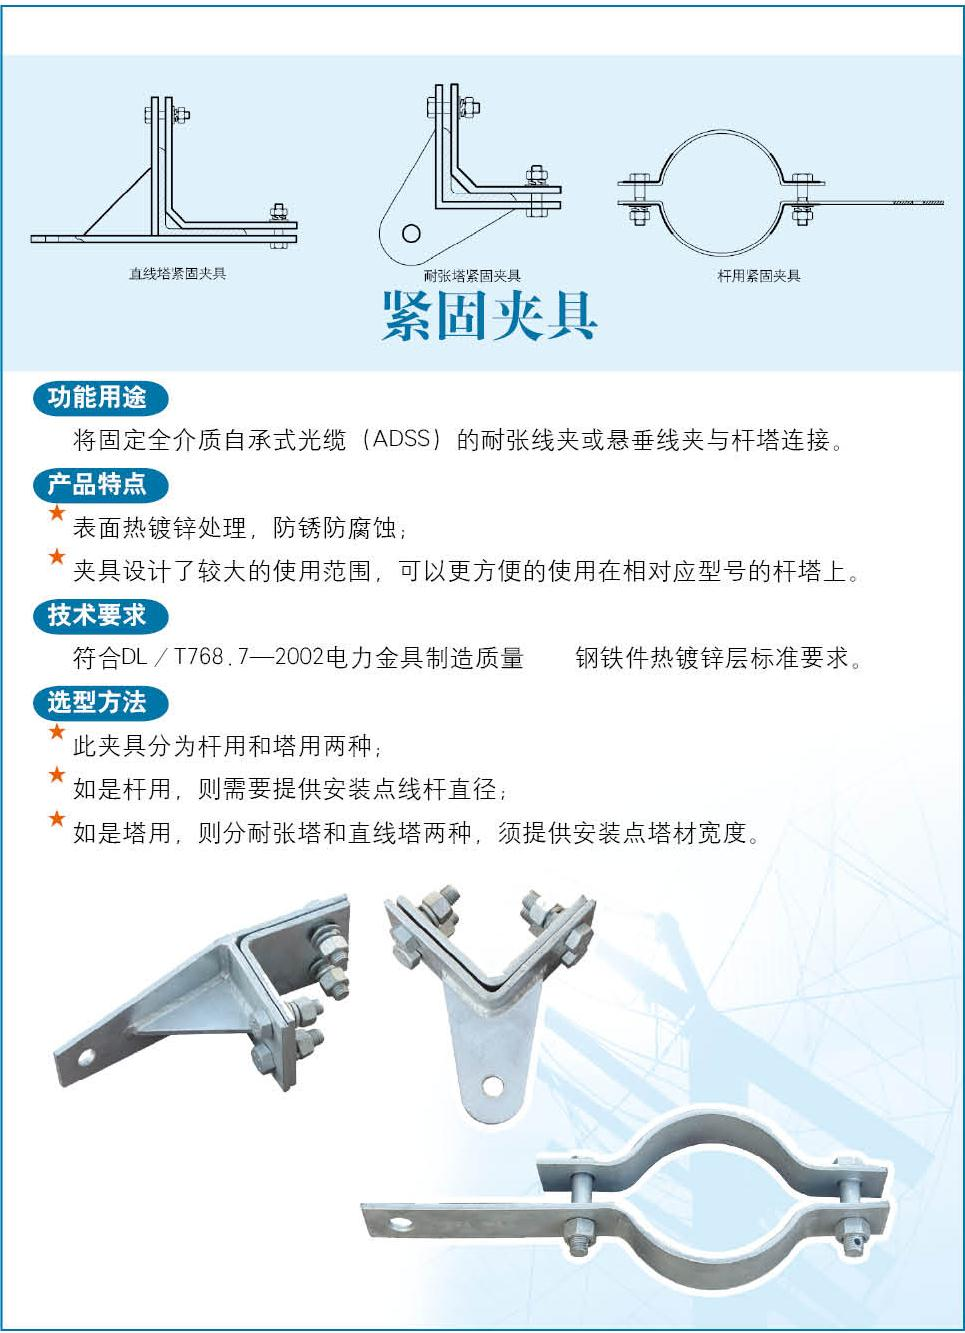 ADSS cable hardware manufacturer